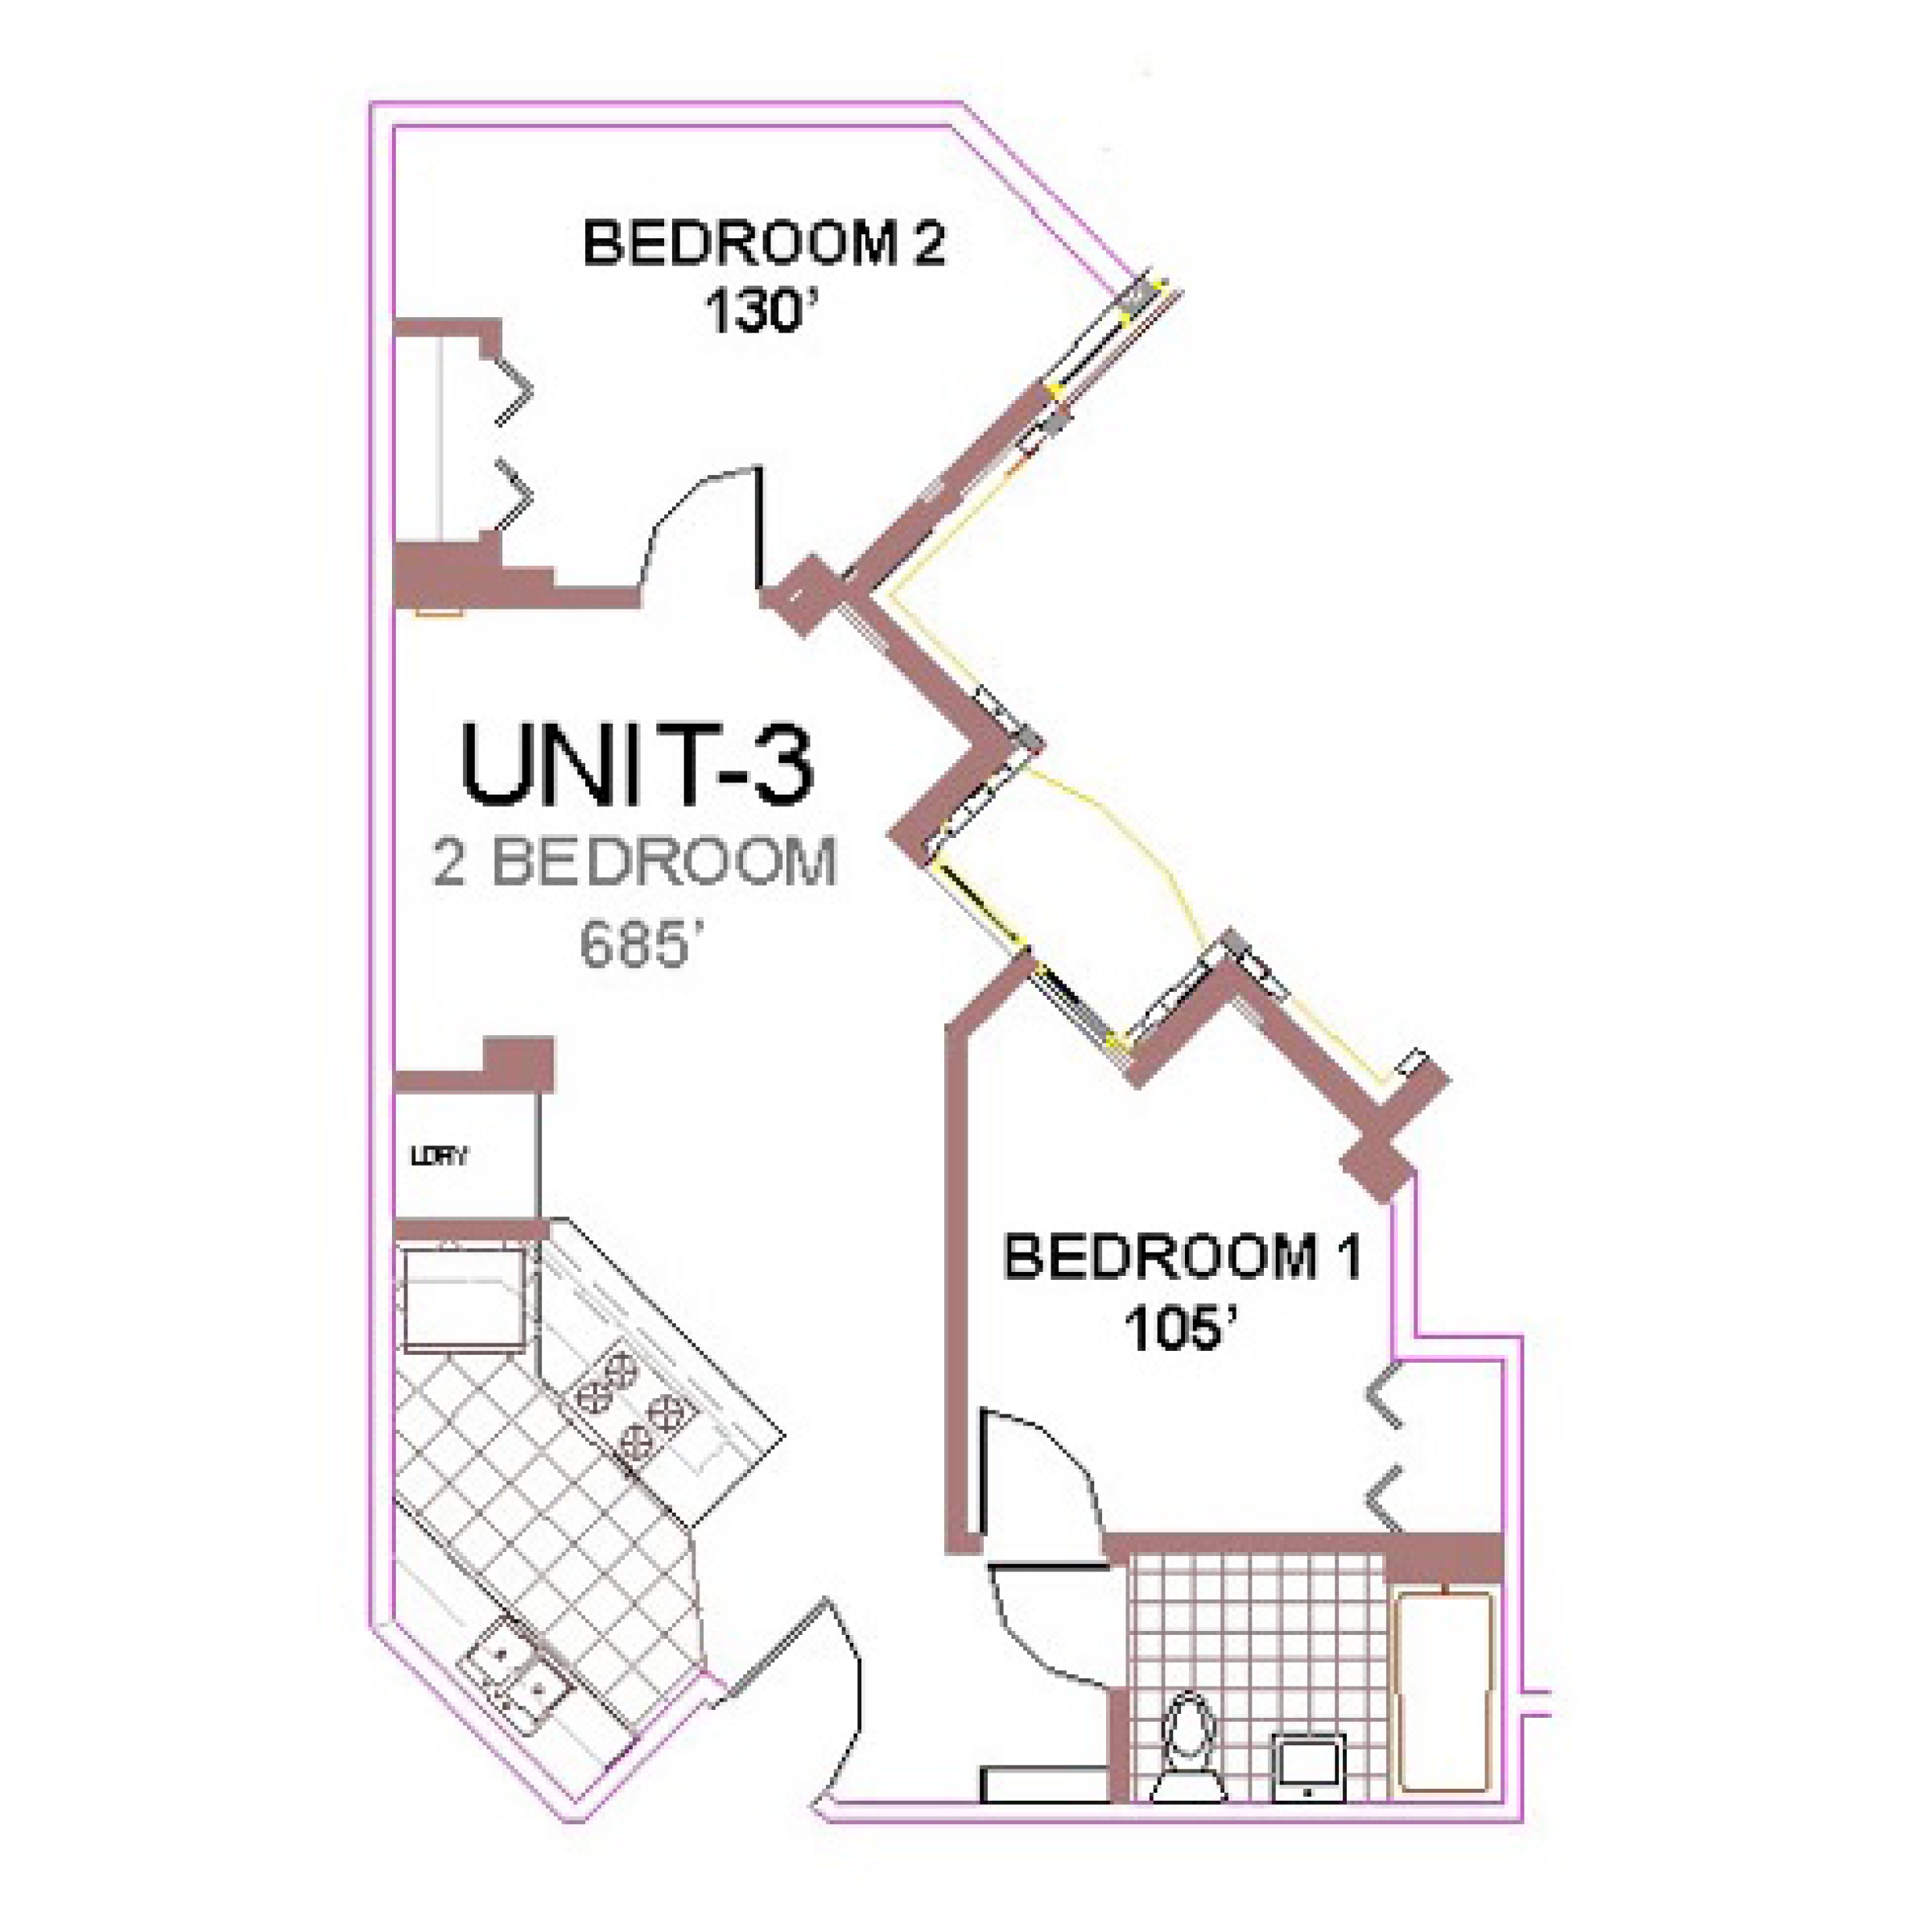 The Aberdeen Apartment Layout 3, 2 bedroom floor plan